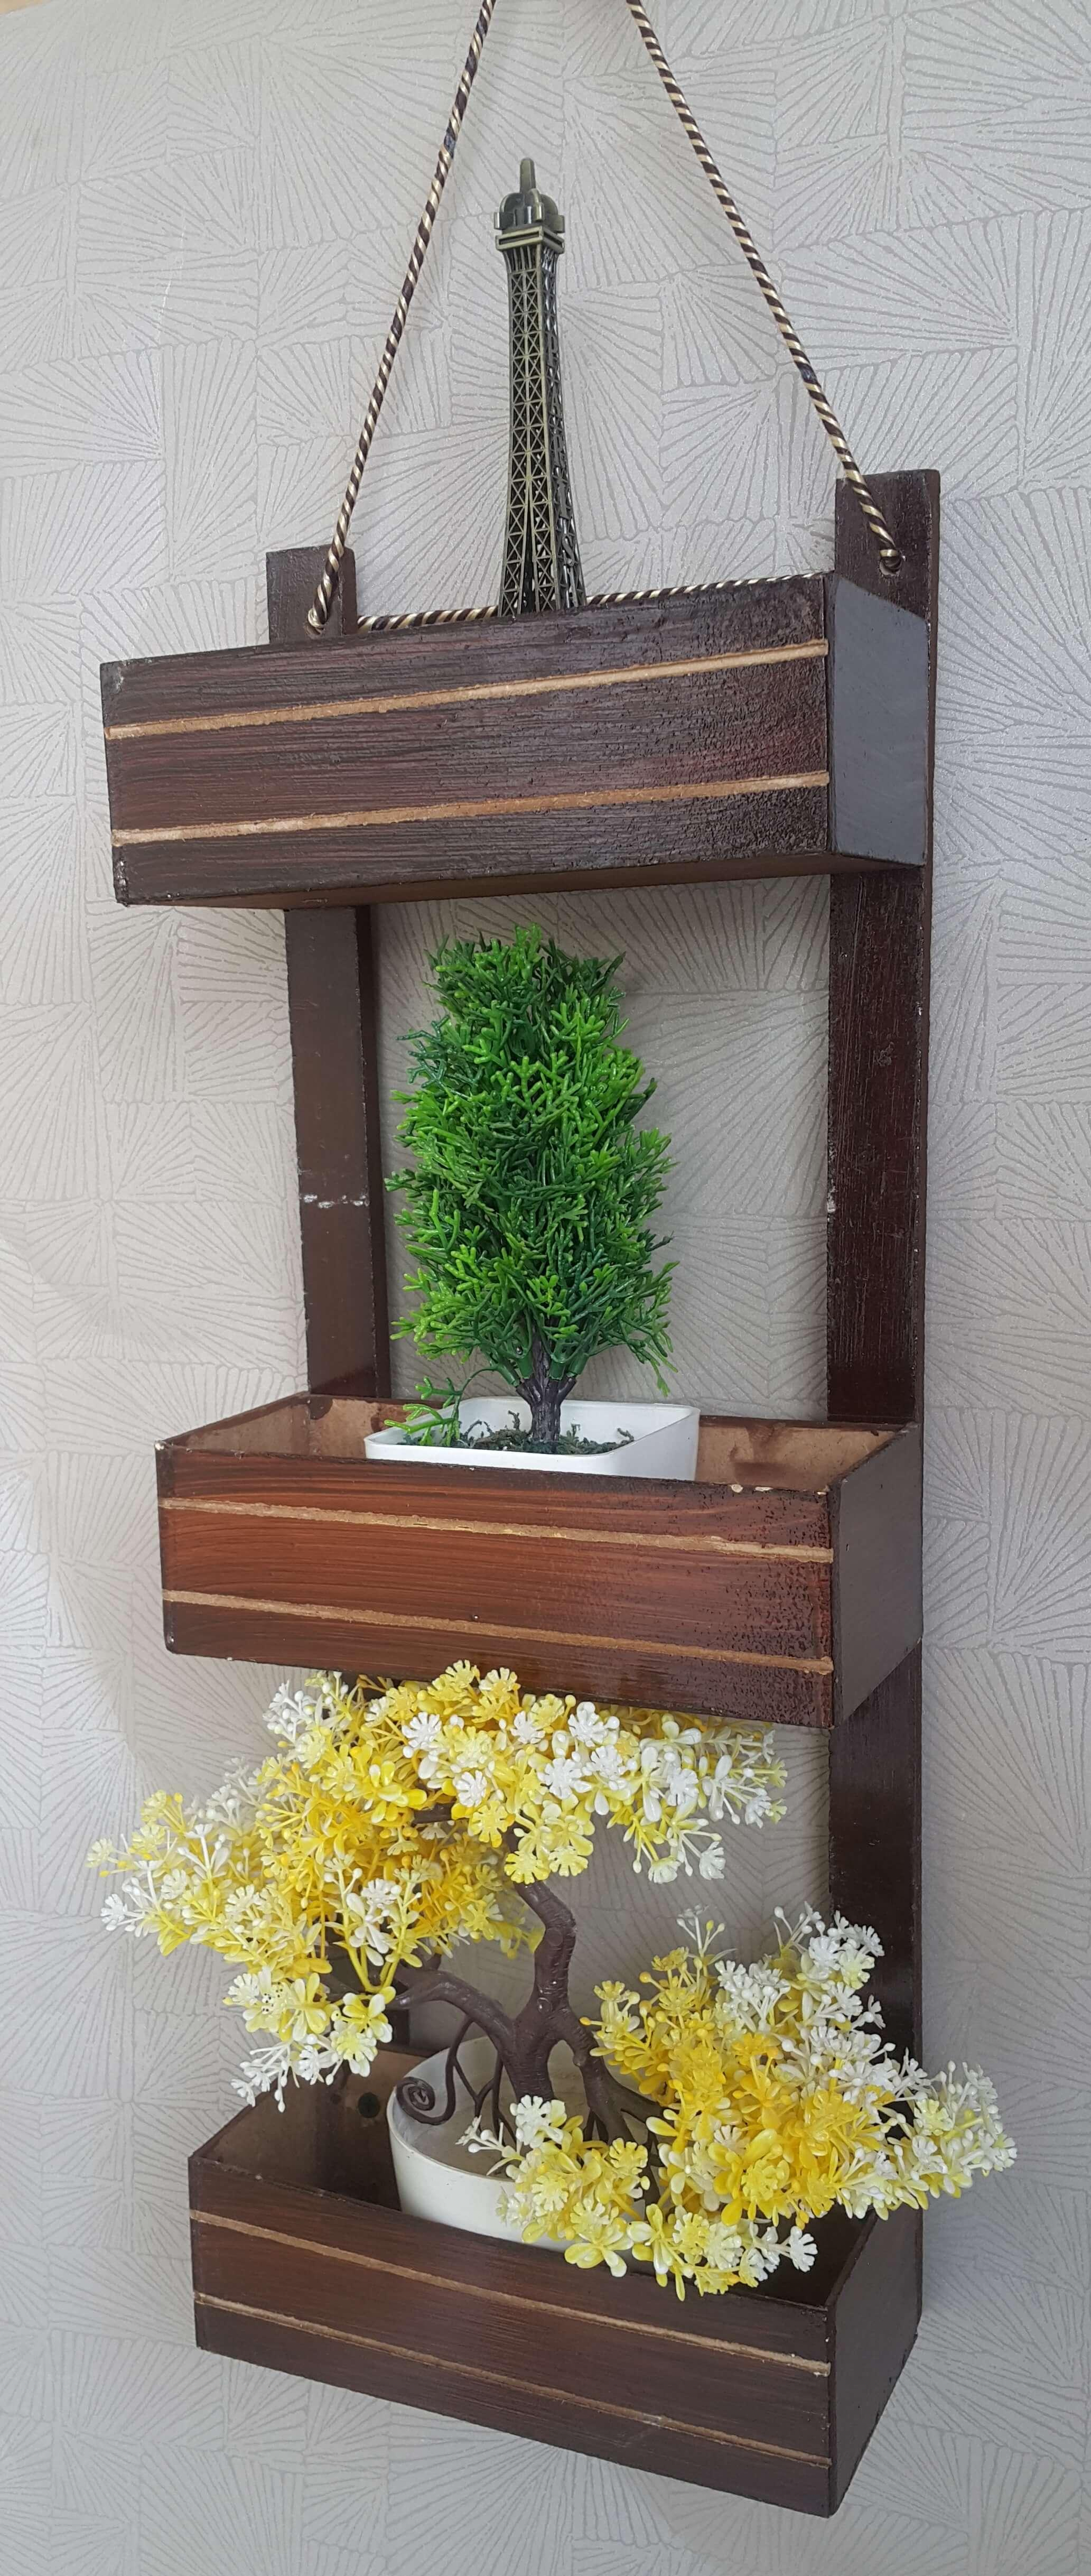 Wall hanging 3 pocket flowers stand